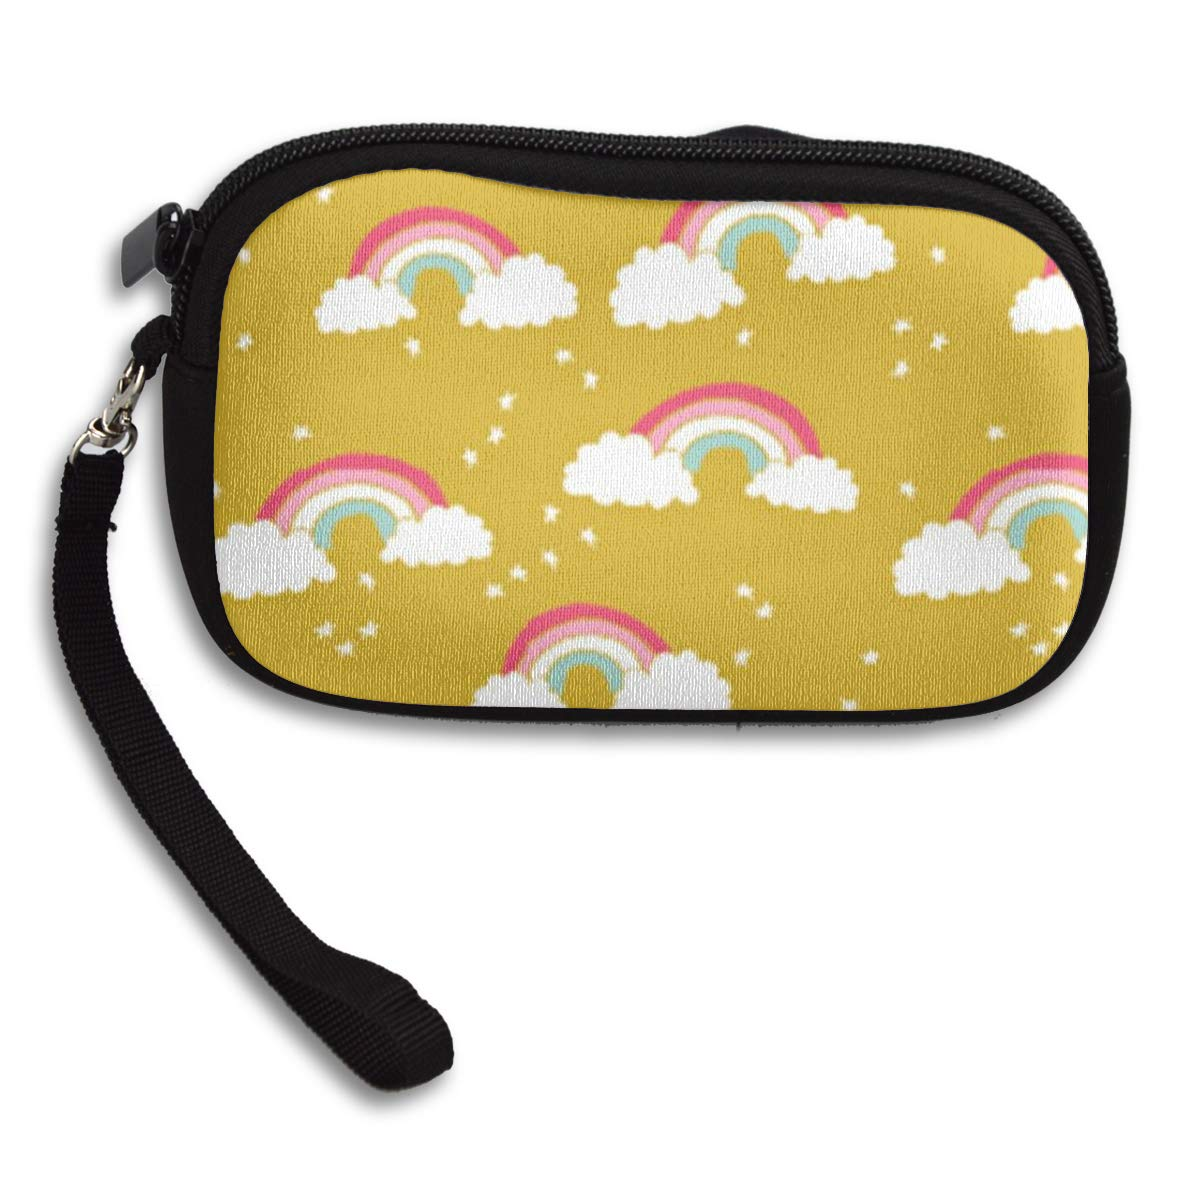 Tiny Bag for Earbuds with Rainbow print kawaii style Zippered Small Pouch for Coins and Cards